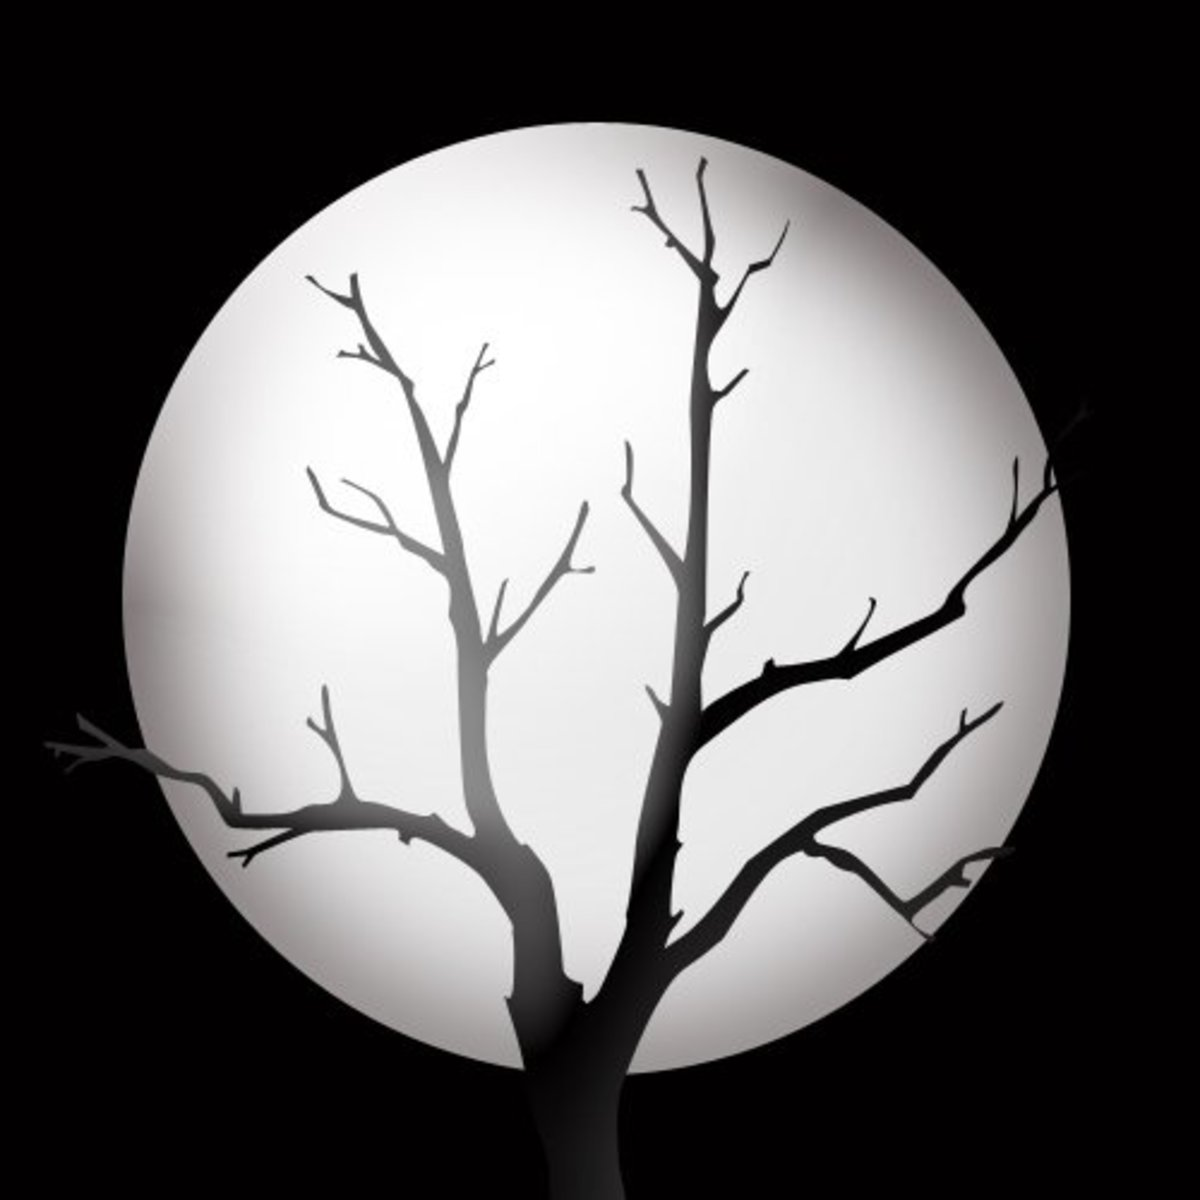 Full moon and tree silhouette graphic.